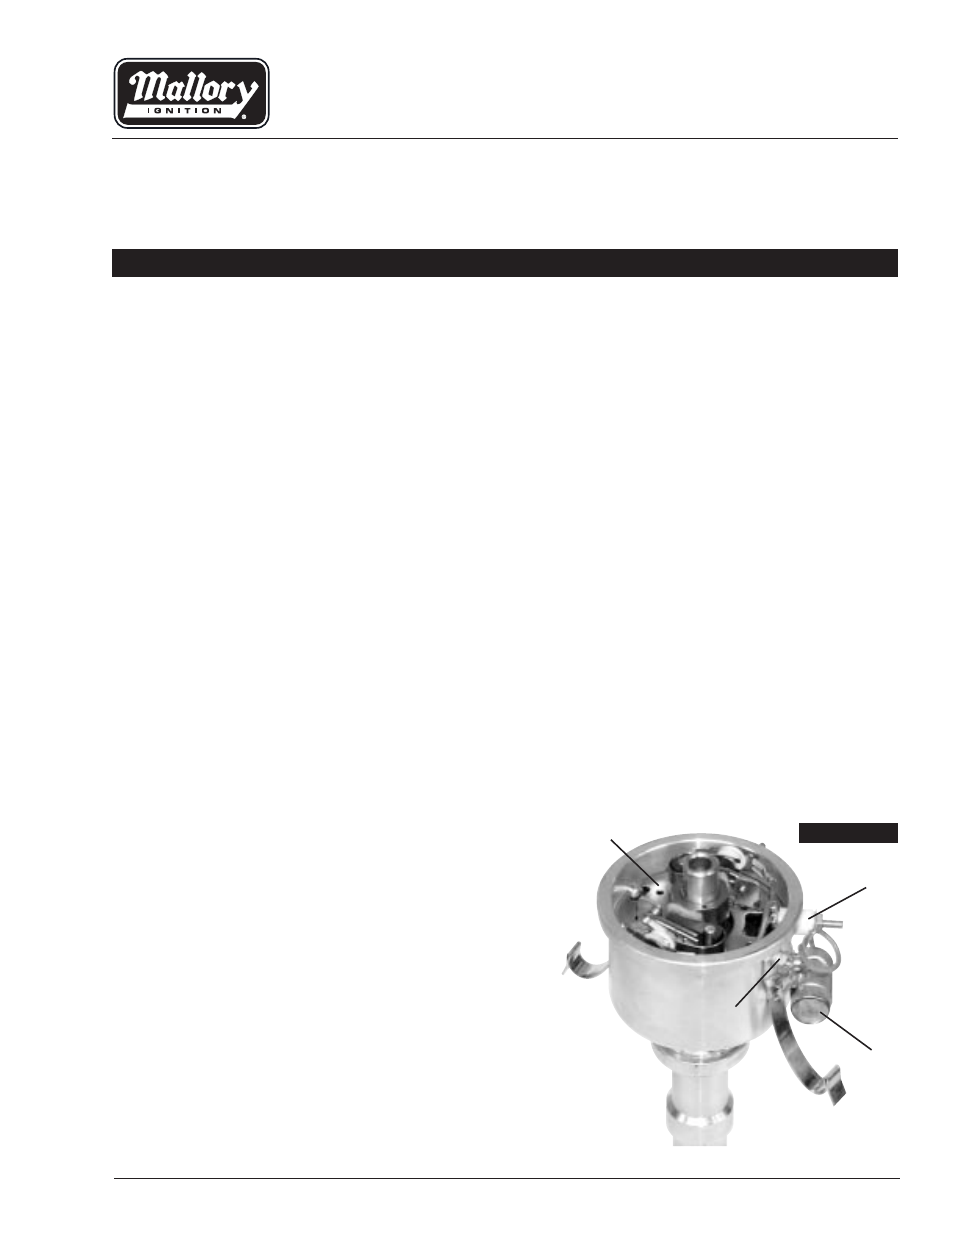 Unilite Distributor Wiring For A Gma | Wiring Liry on mallory magneto, mallory wire, mallory parts catalog,